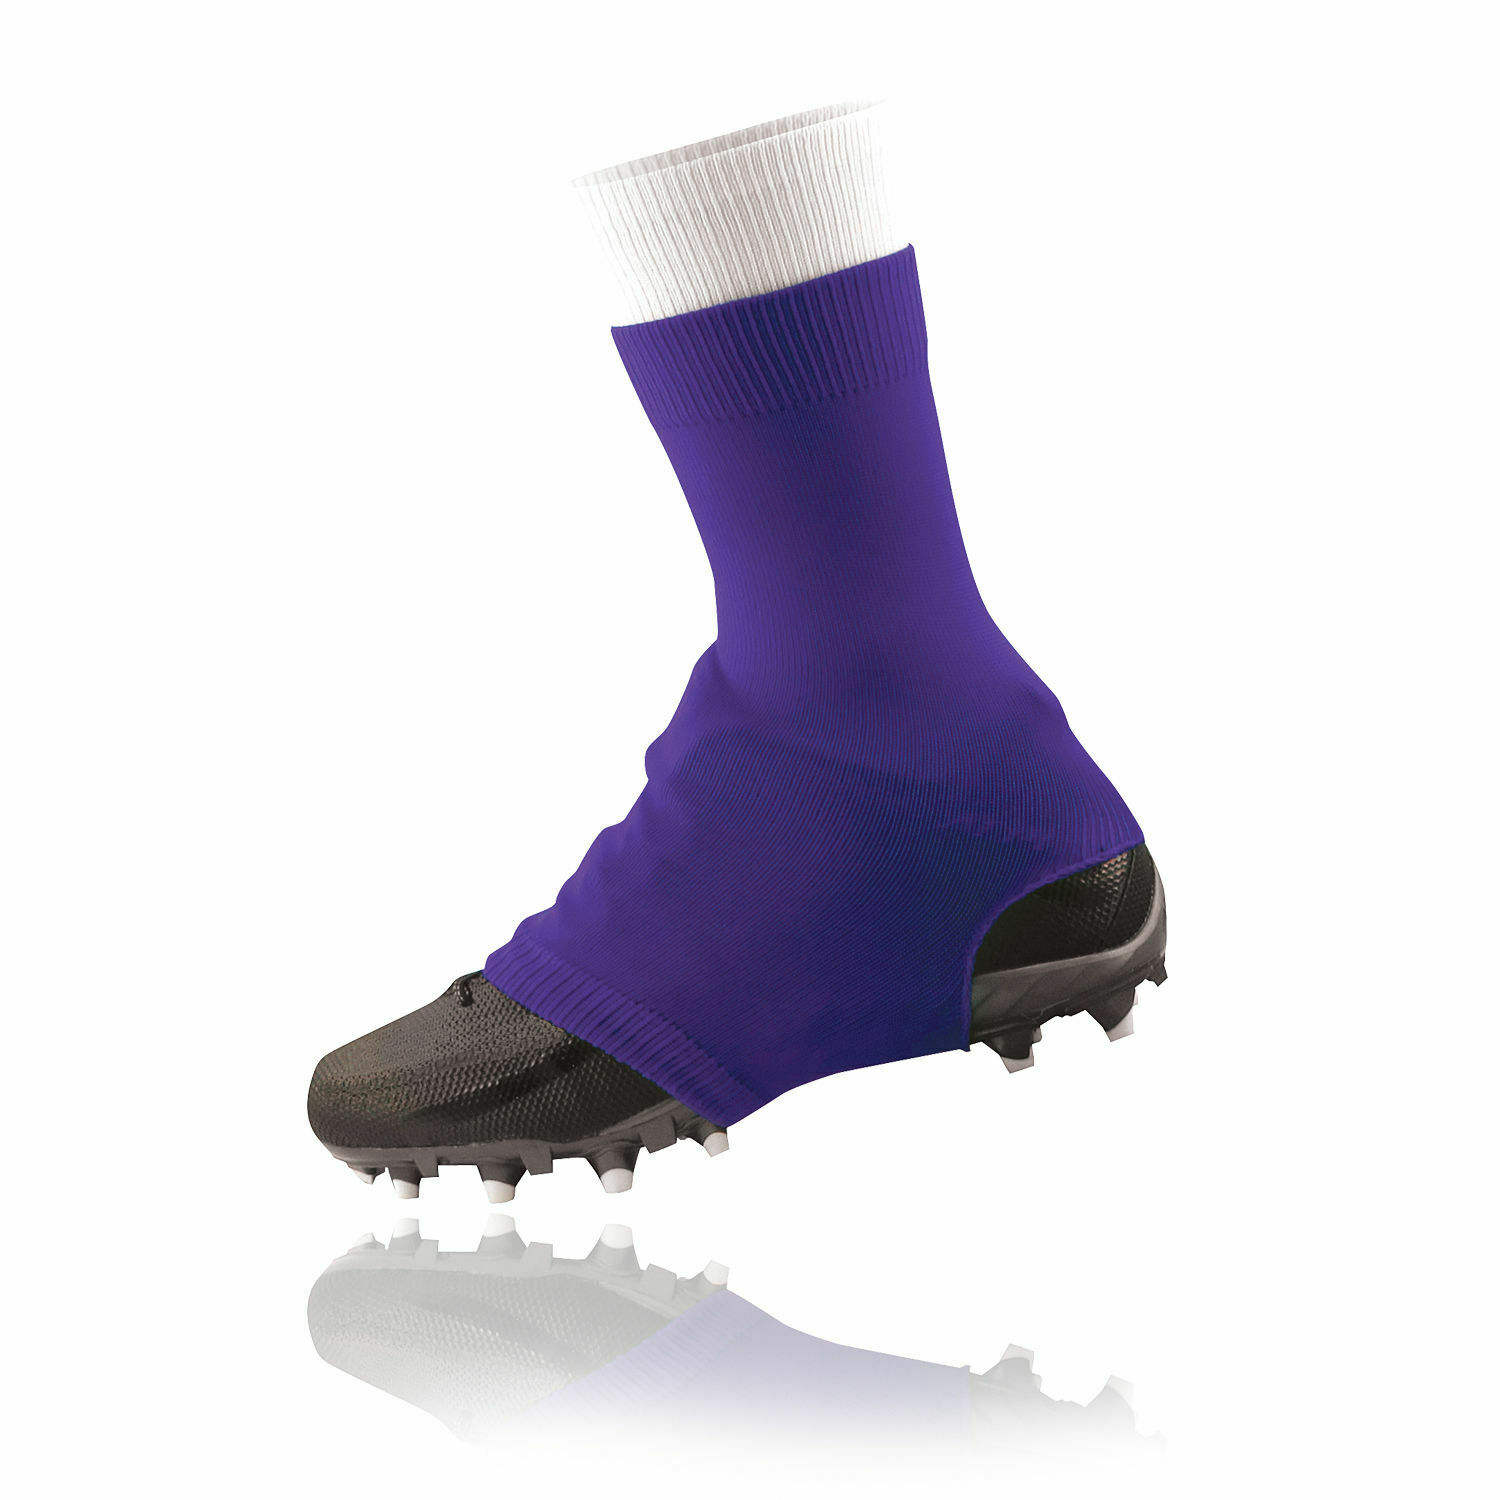 Pure wholesale product football cleats cover spat american/cleat covers spats/pink cleat covers